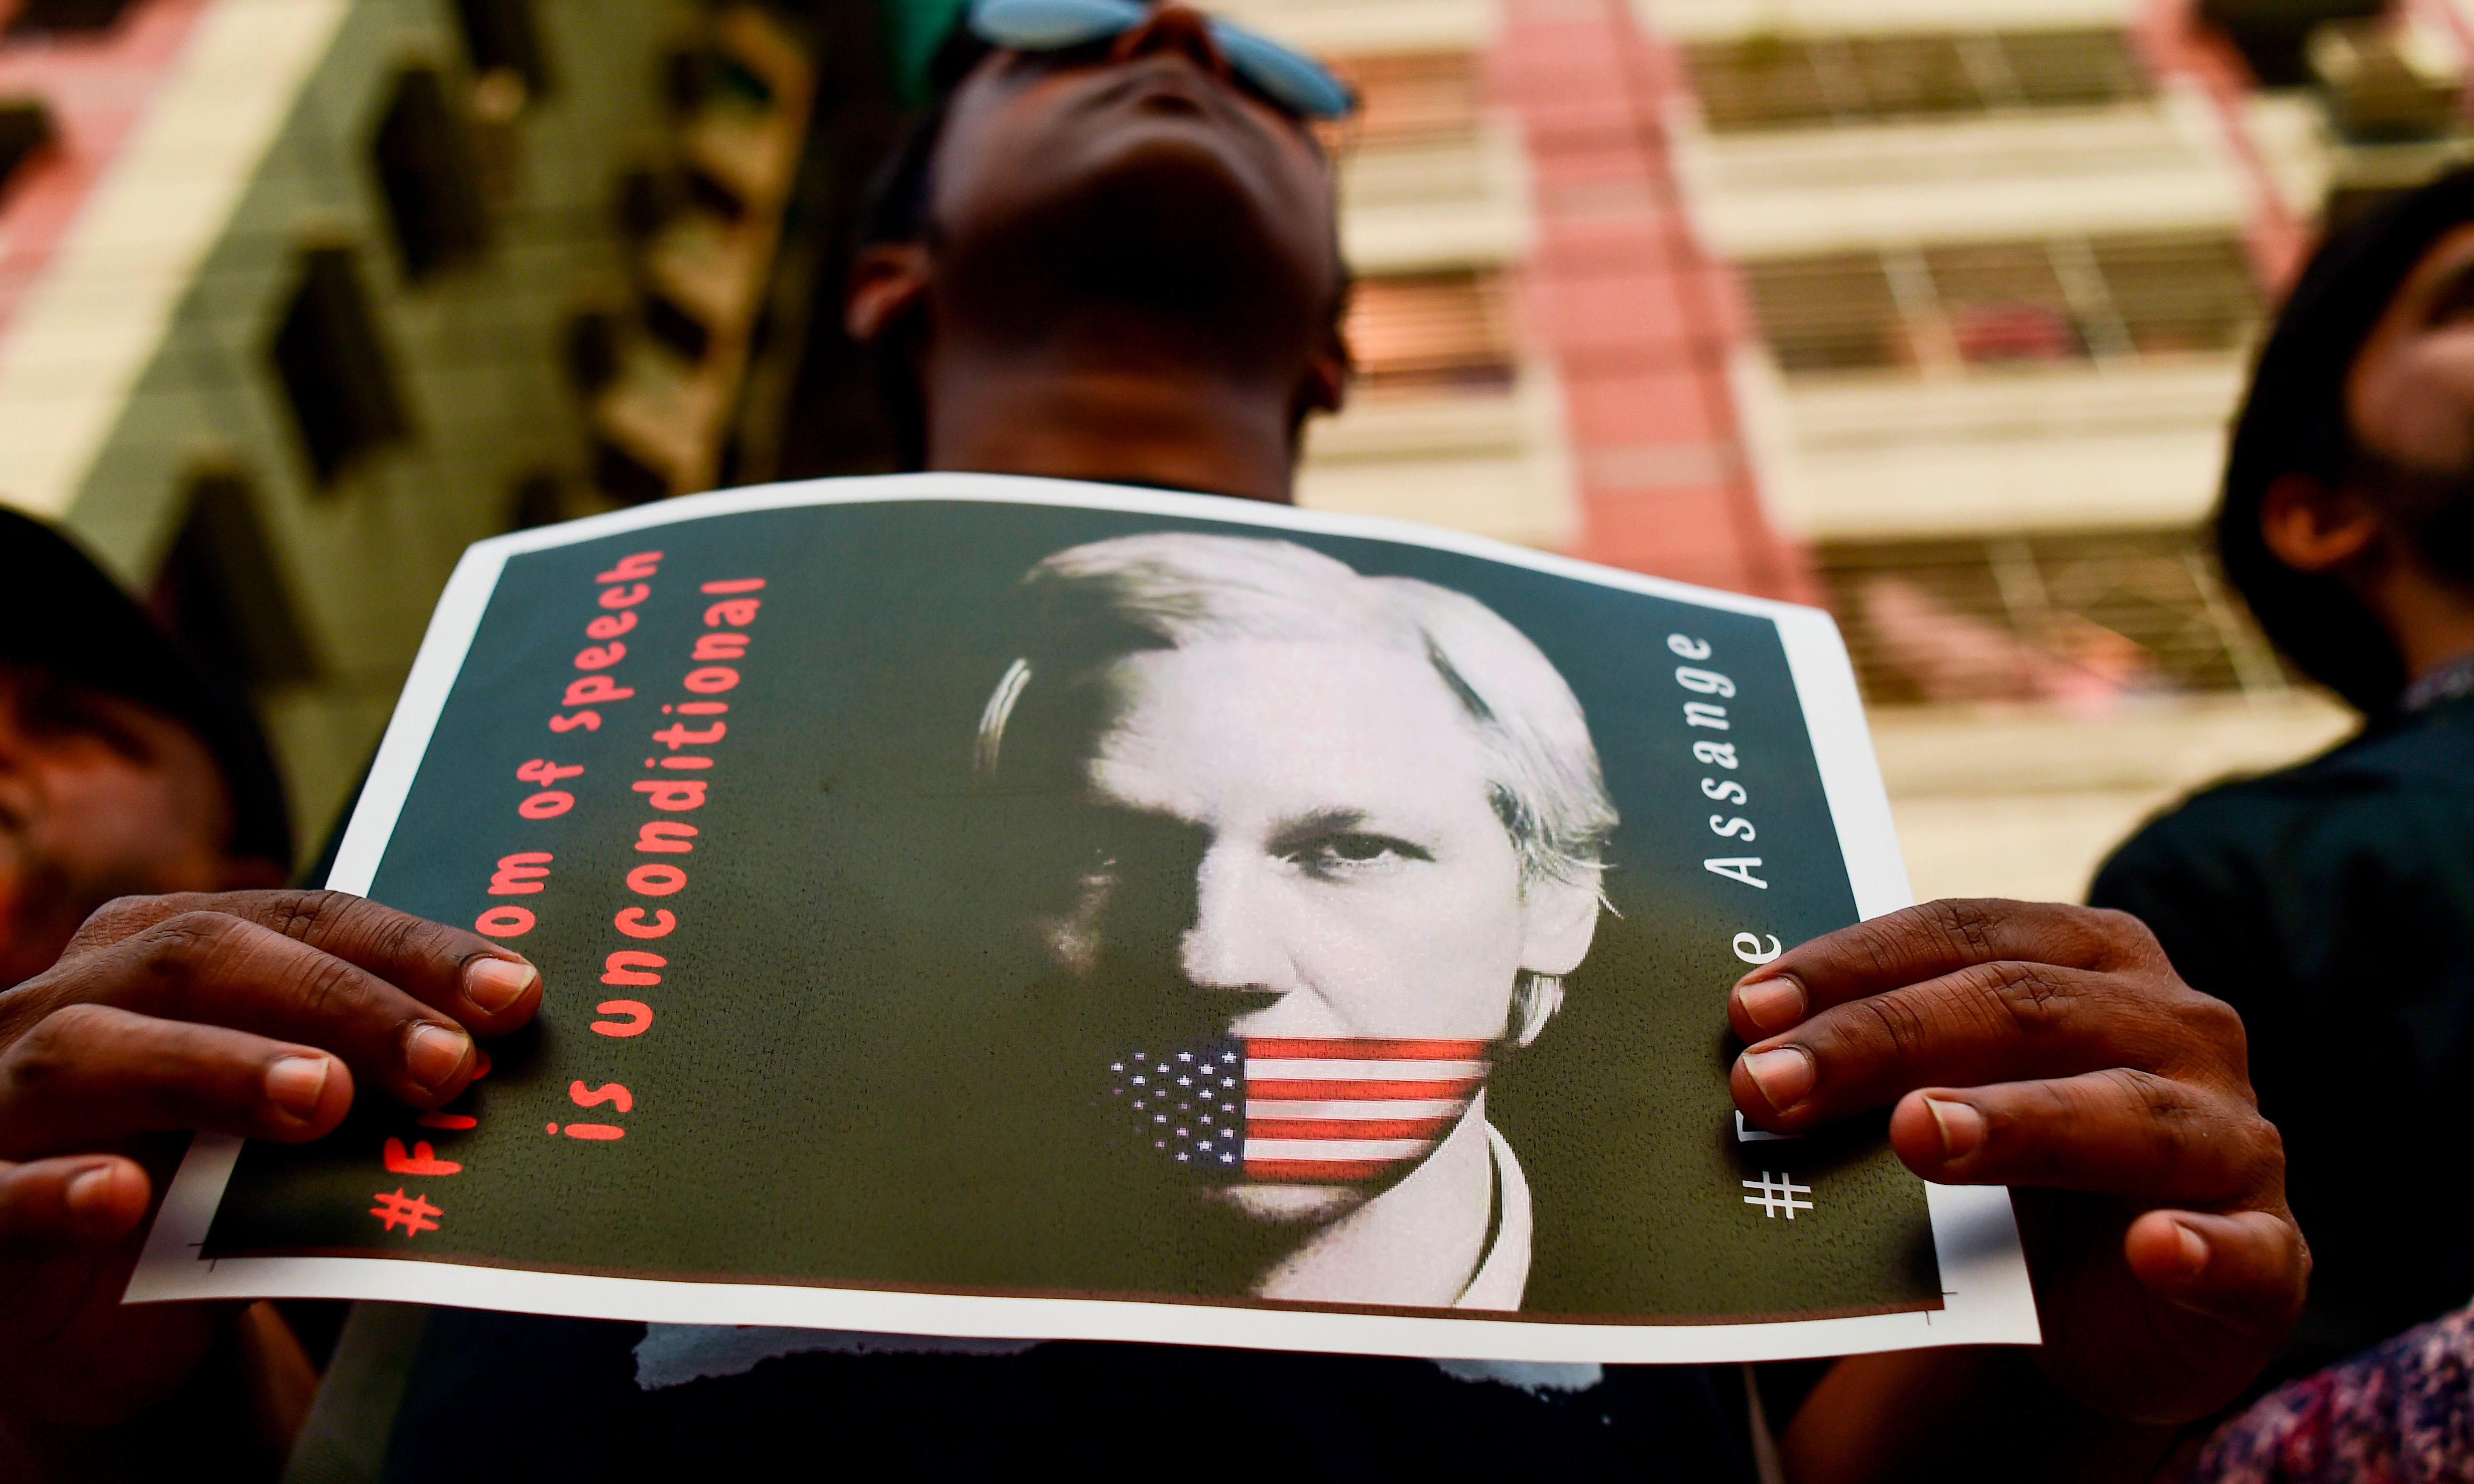 Assange's indictment escalates Trump's attacks on free speech, experts say